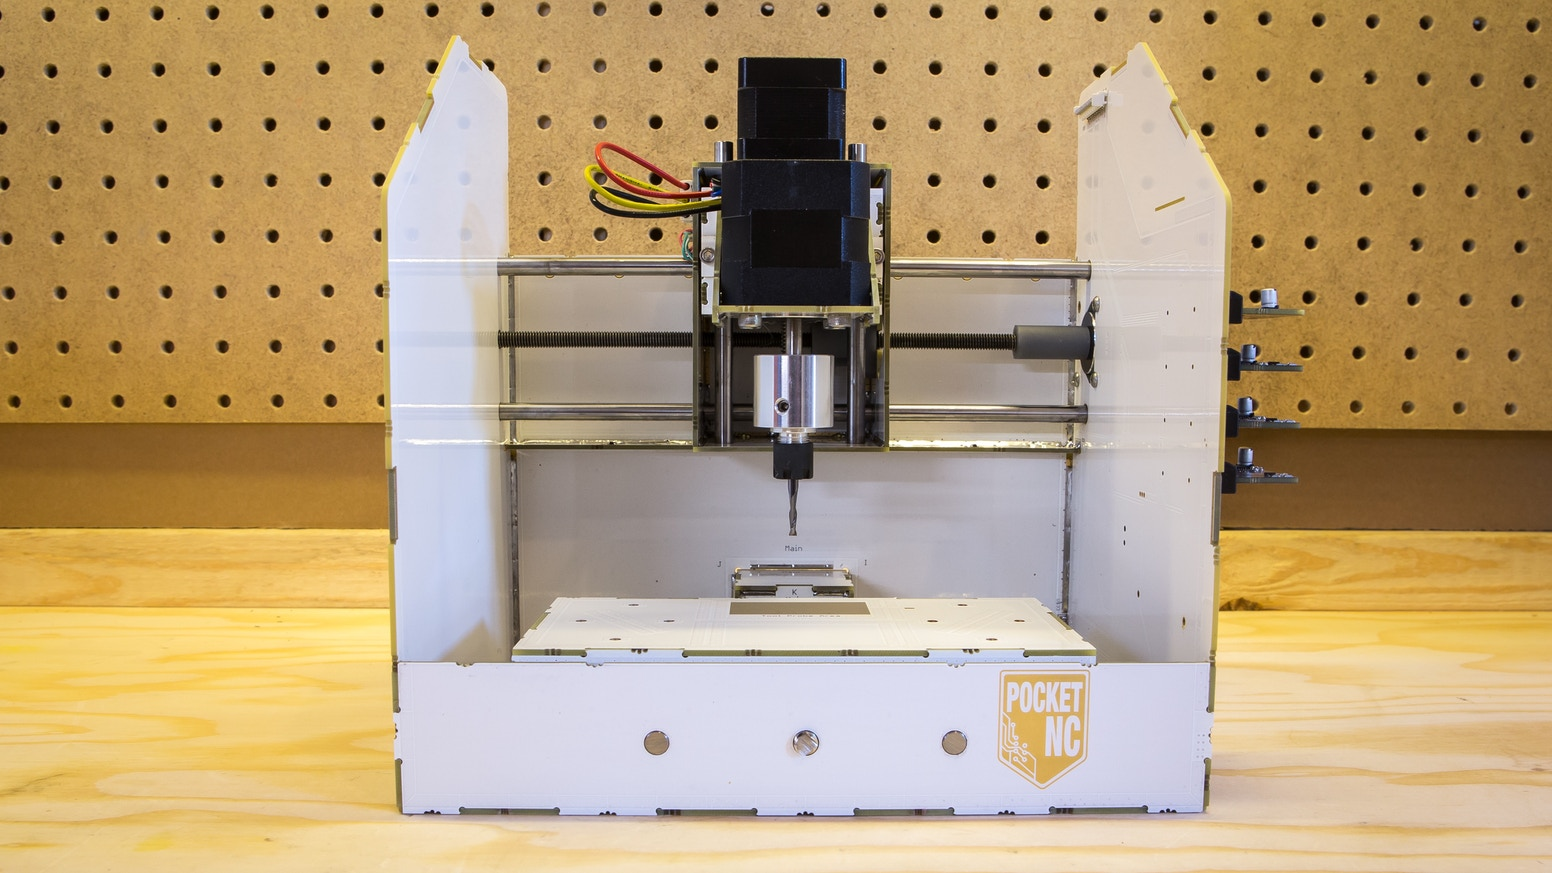 Fr4 Machine Shield The Cnc Kit From An Entire Sheet Of Pcb By Printed Circuit Board Making Buy Is A 3 Axis Cape Or Hat For Milling Laser